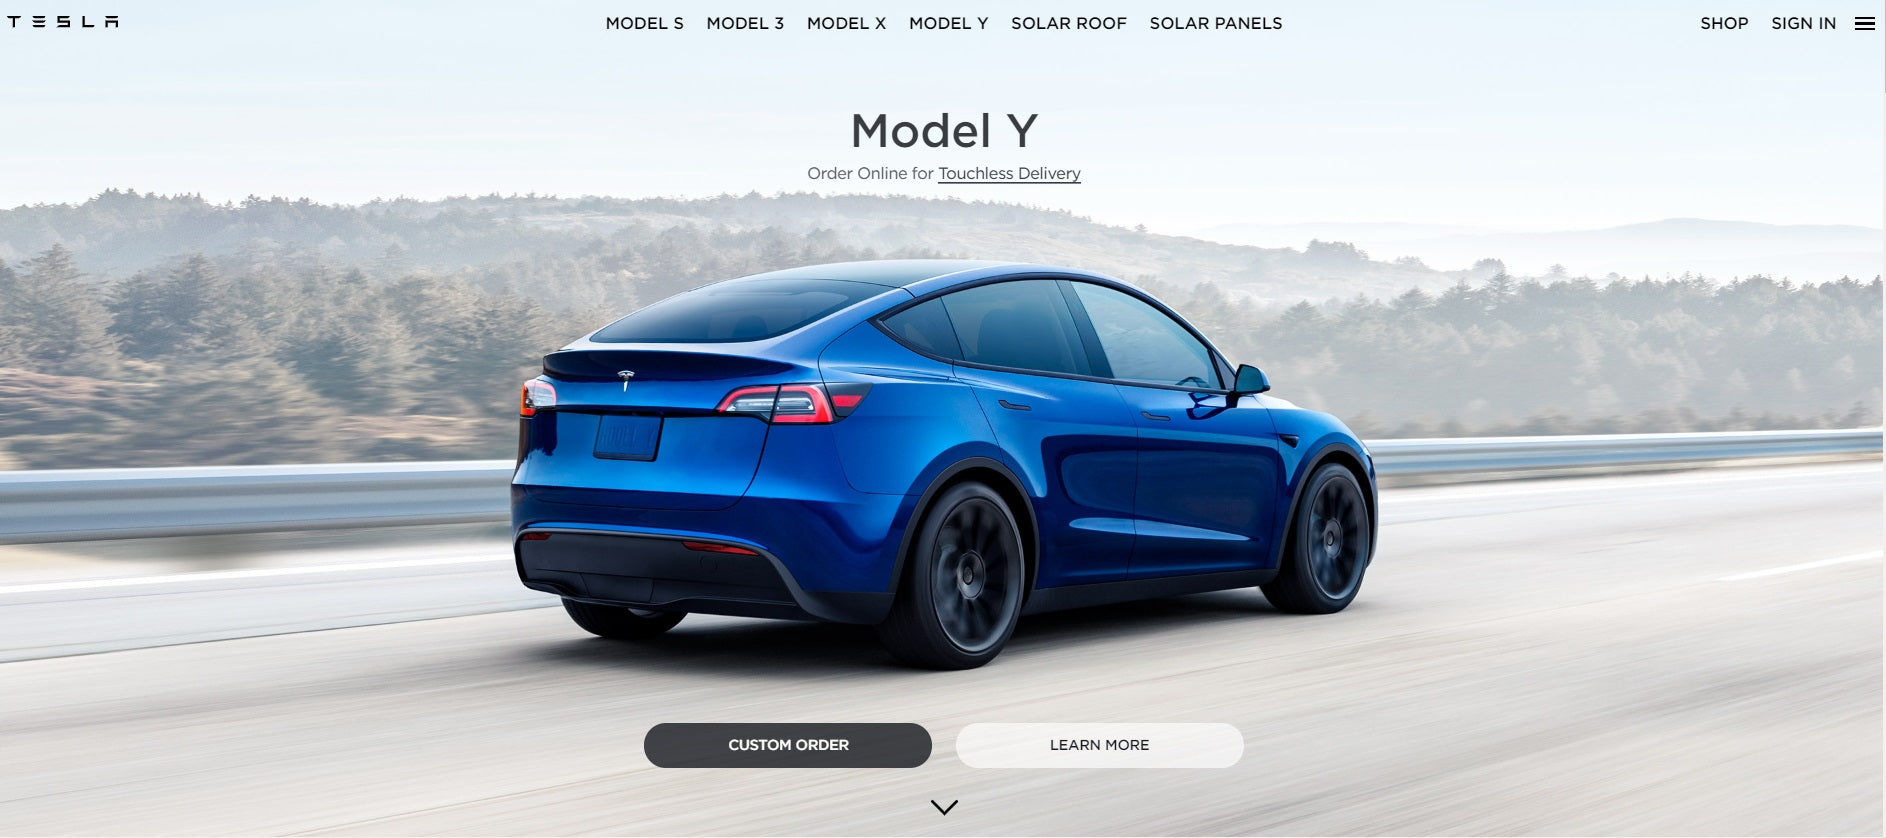 Tesla Moves Model Y to Top of Official Site, Hinting Next Level Ramping to Begin